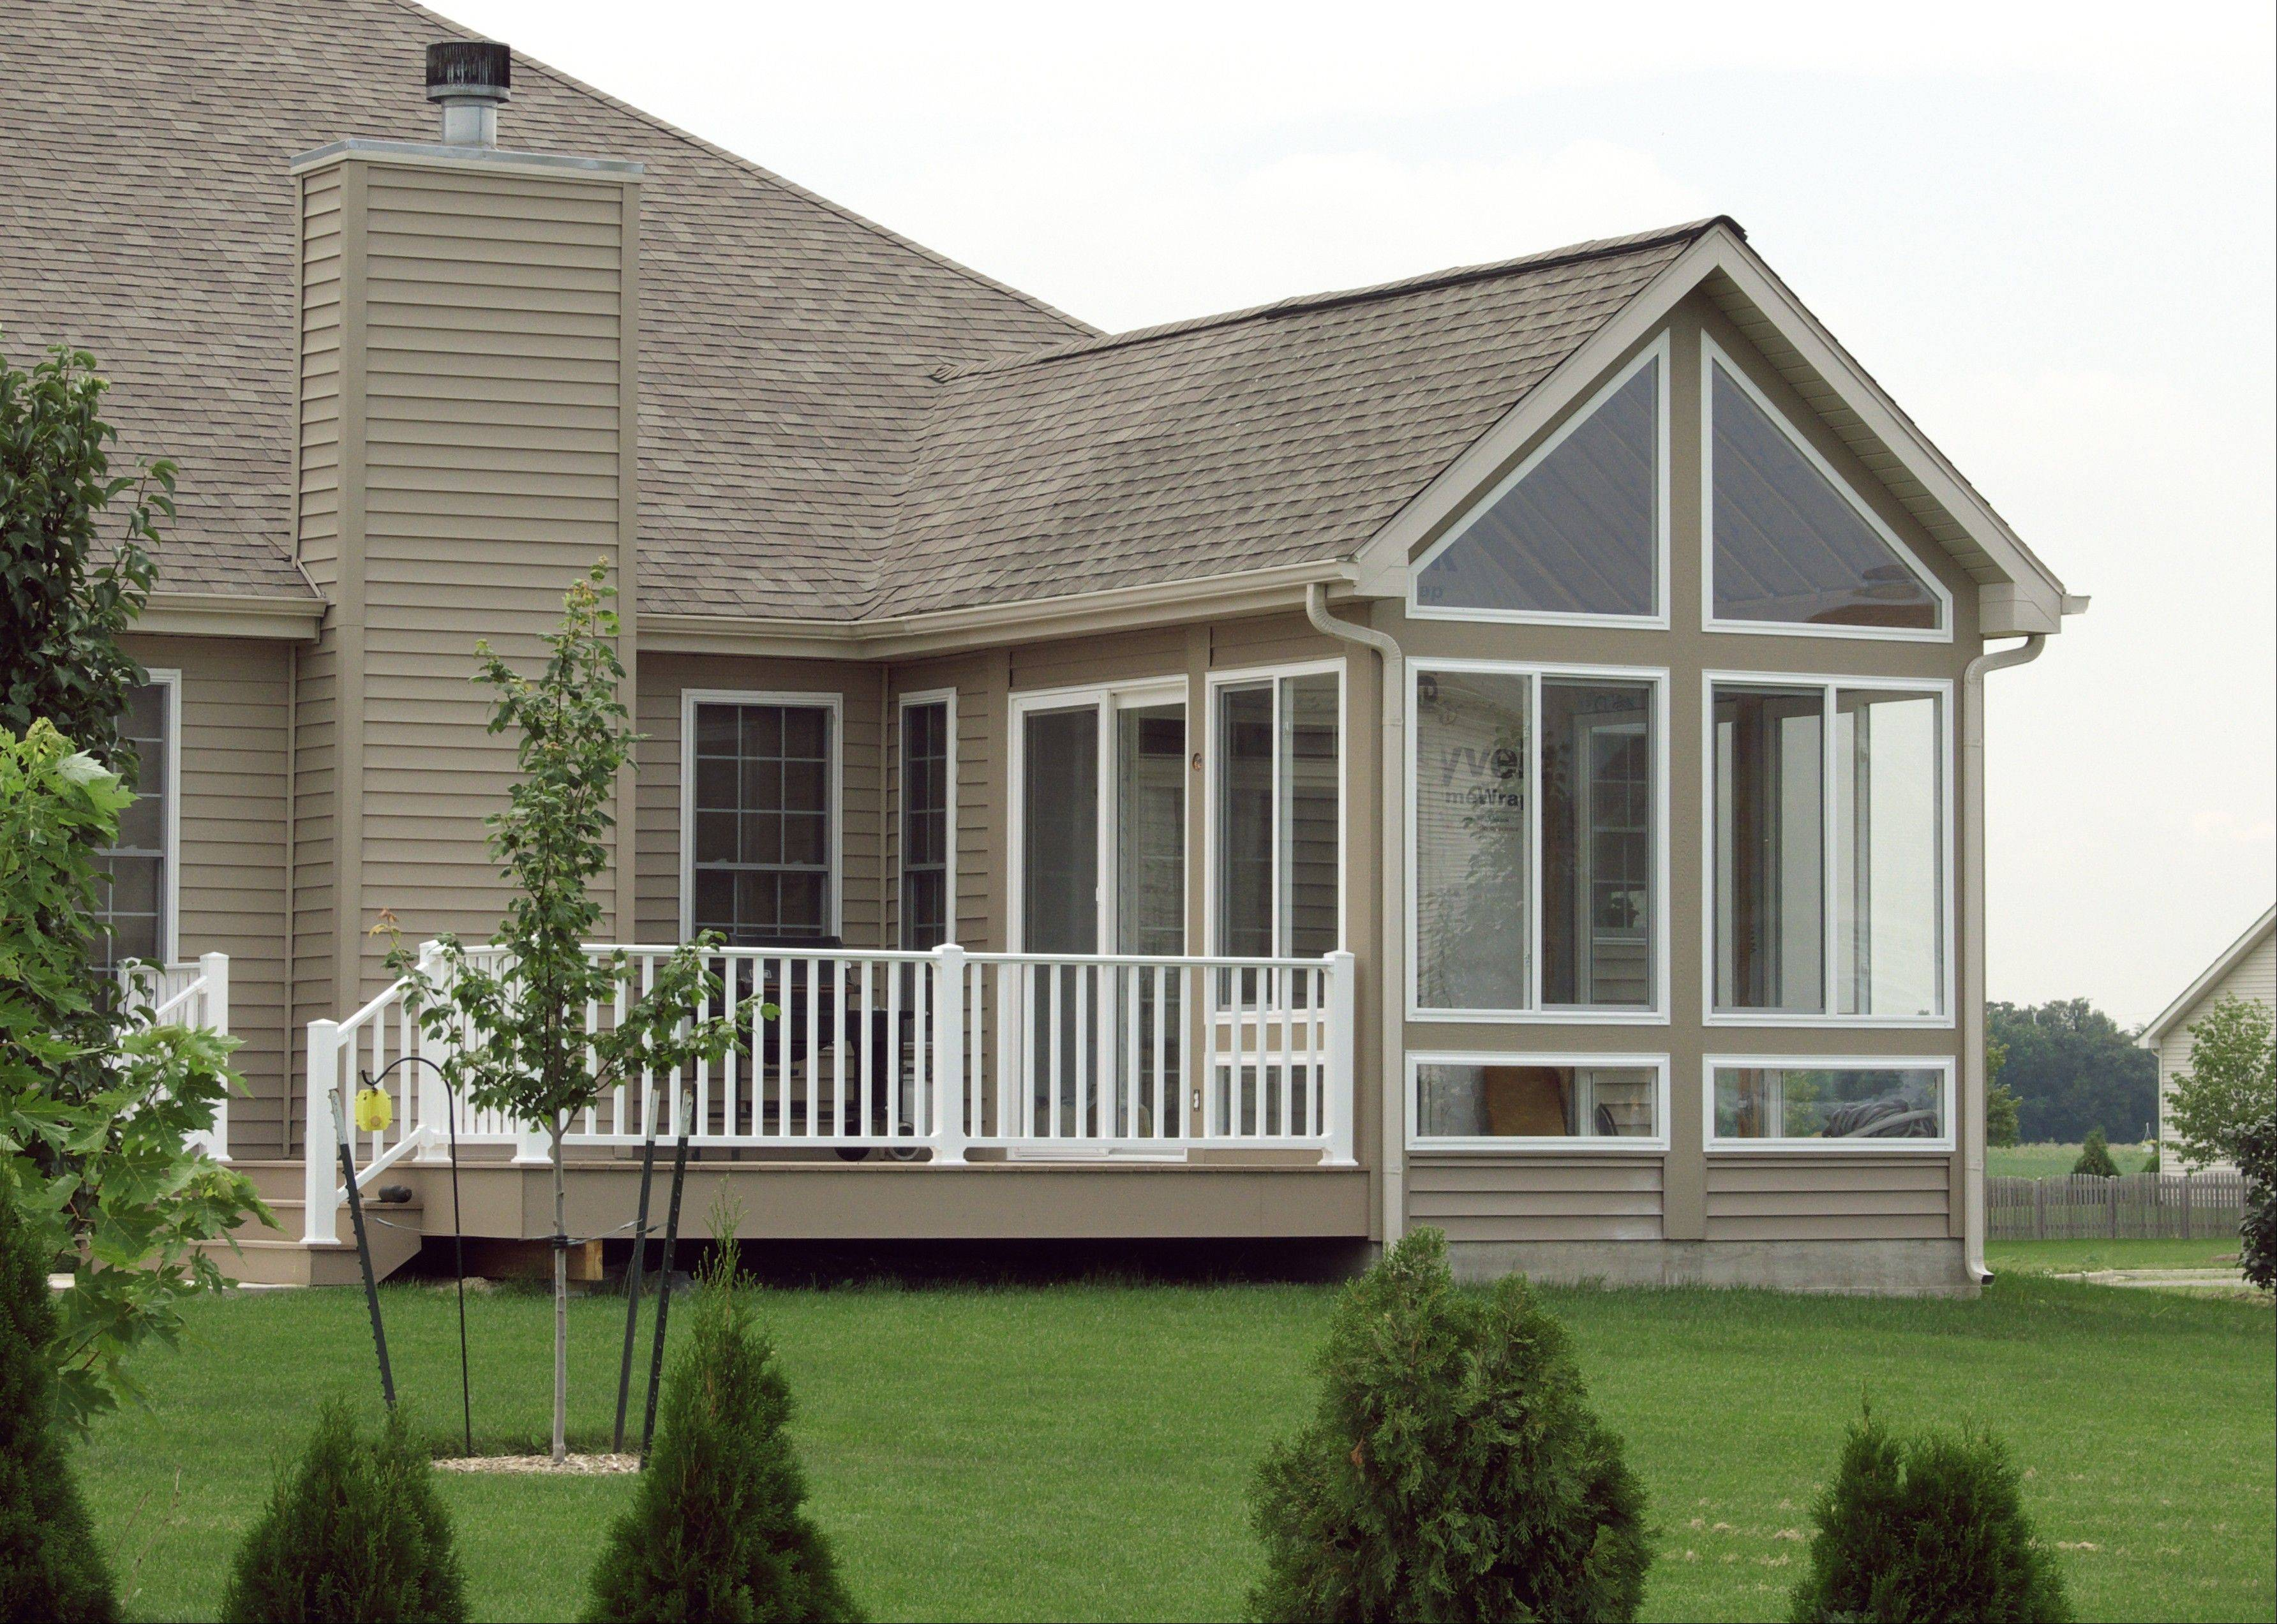 Timberbuilt sunrooms can be either a three-season or four-season room, depending on window and heating options.